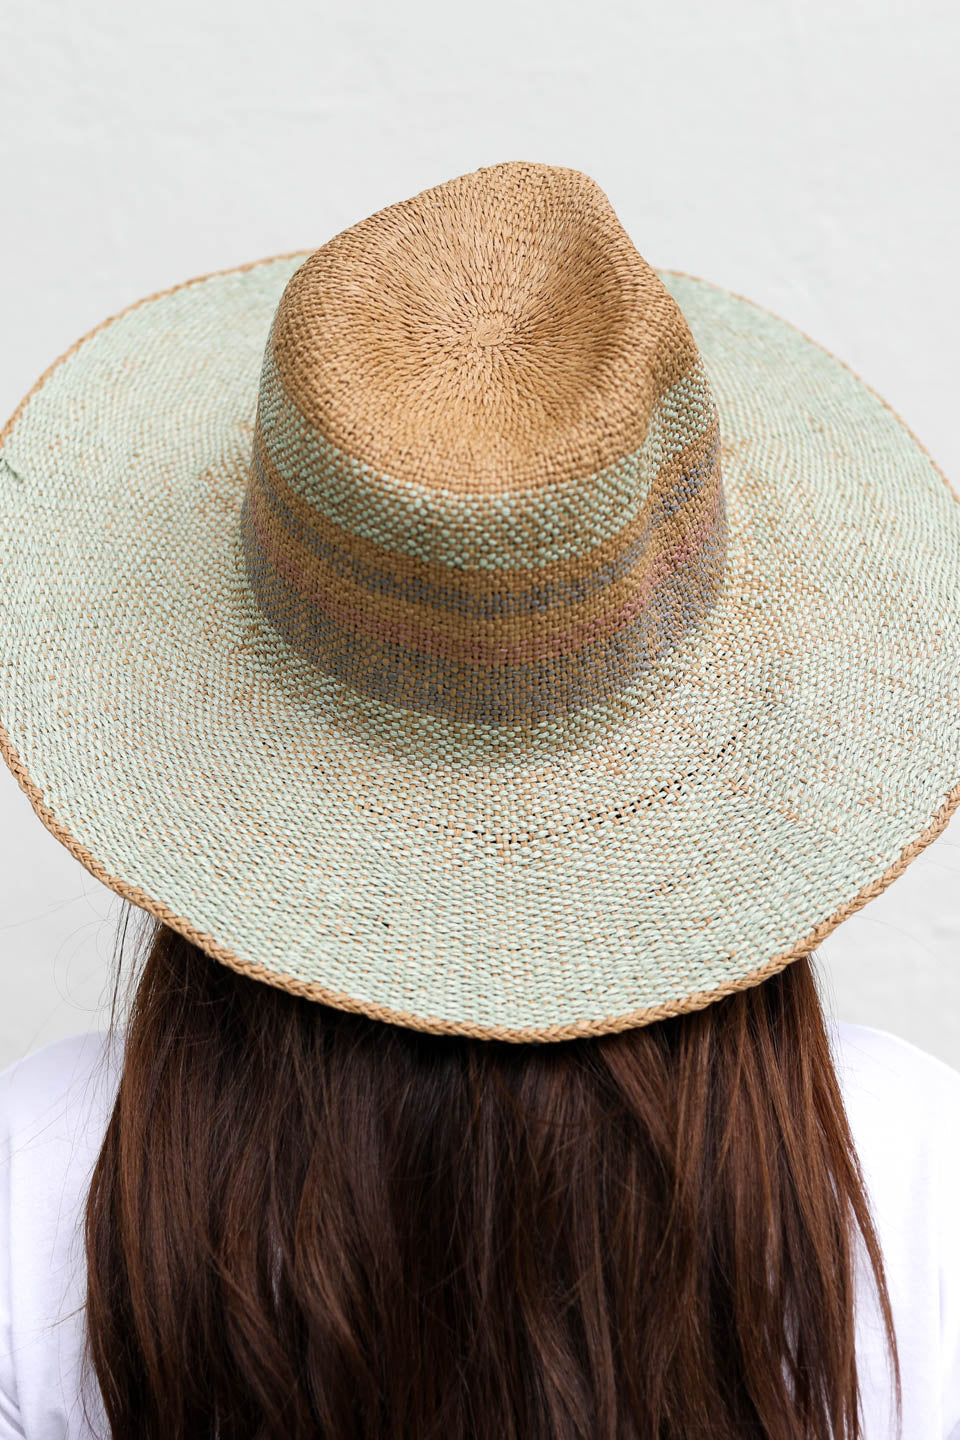 Meadow Days Multicolored Straw Hat